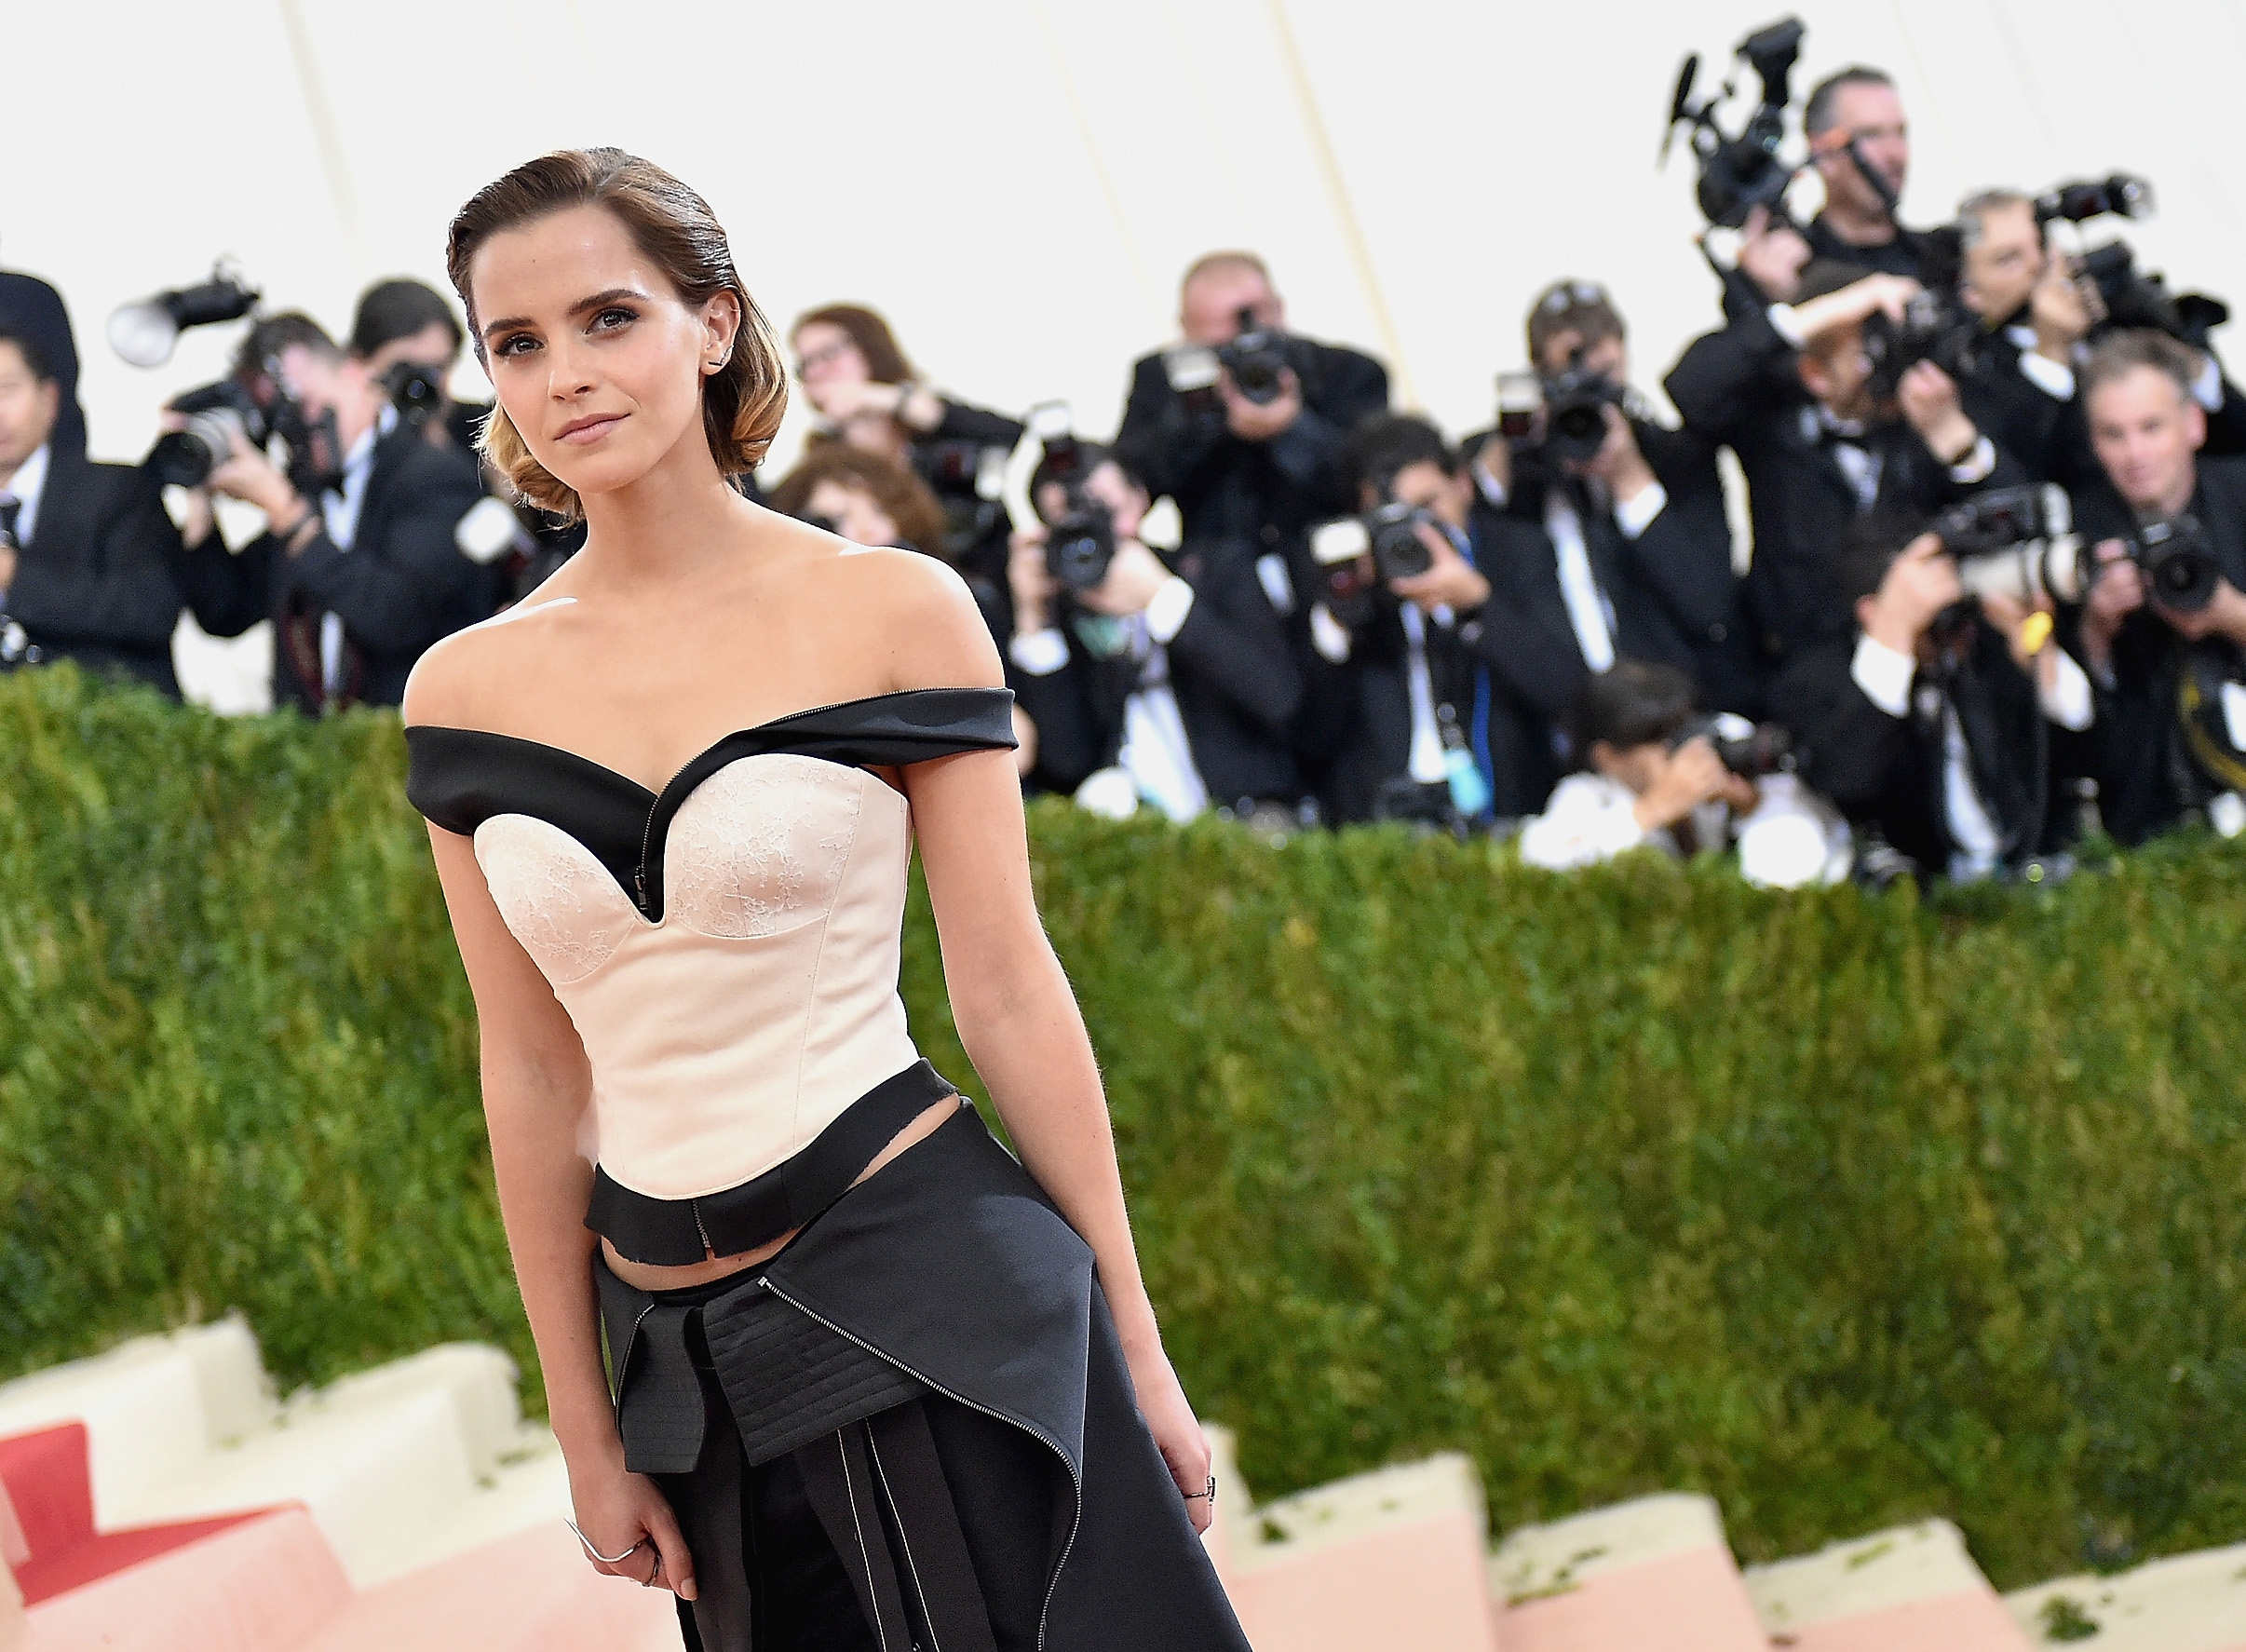 Emma Watson Breasts And Nipples Pics Surface Online, Lawyers Not Happy GettyImages 528406624